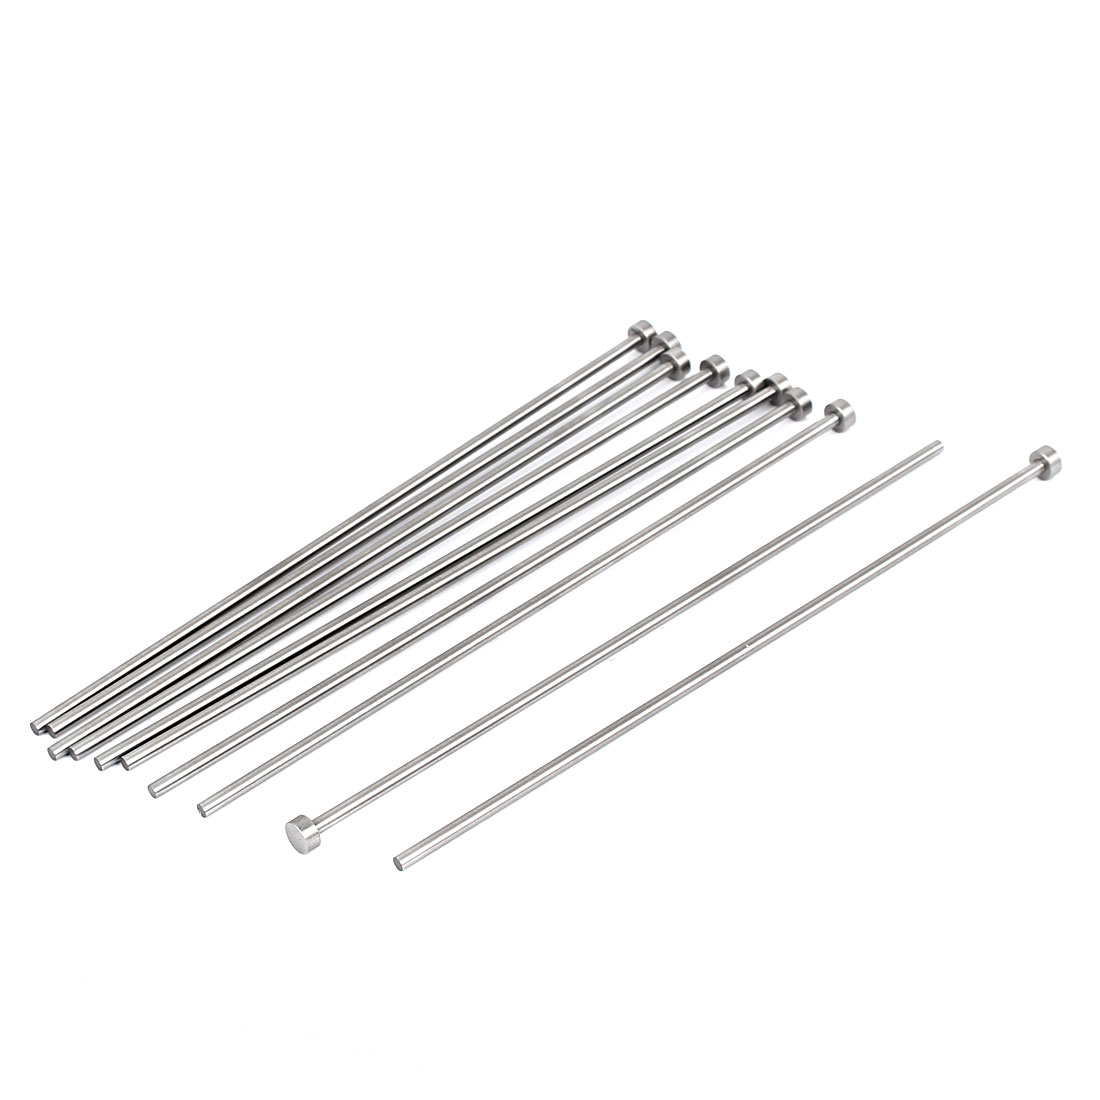 6mm x 157mm Round Tip Straight Ejector Pins Silver Gray 10 PCS